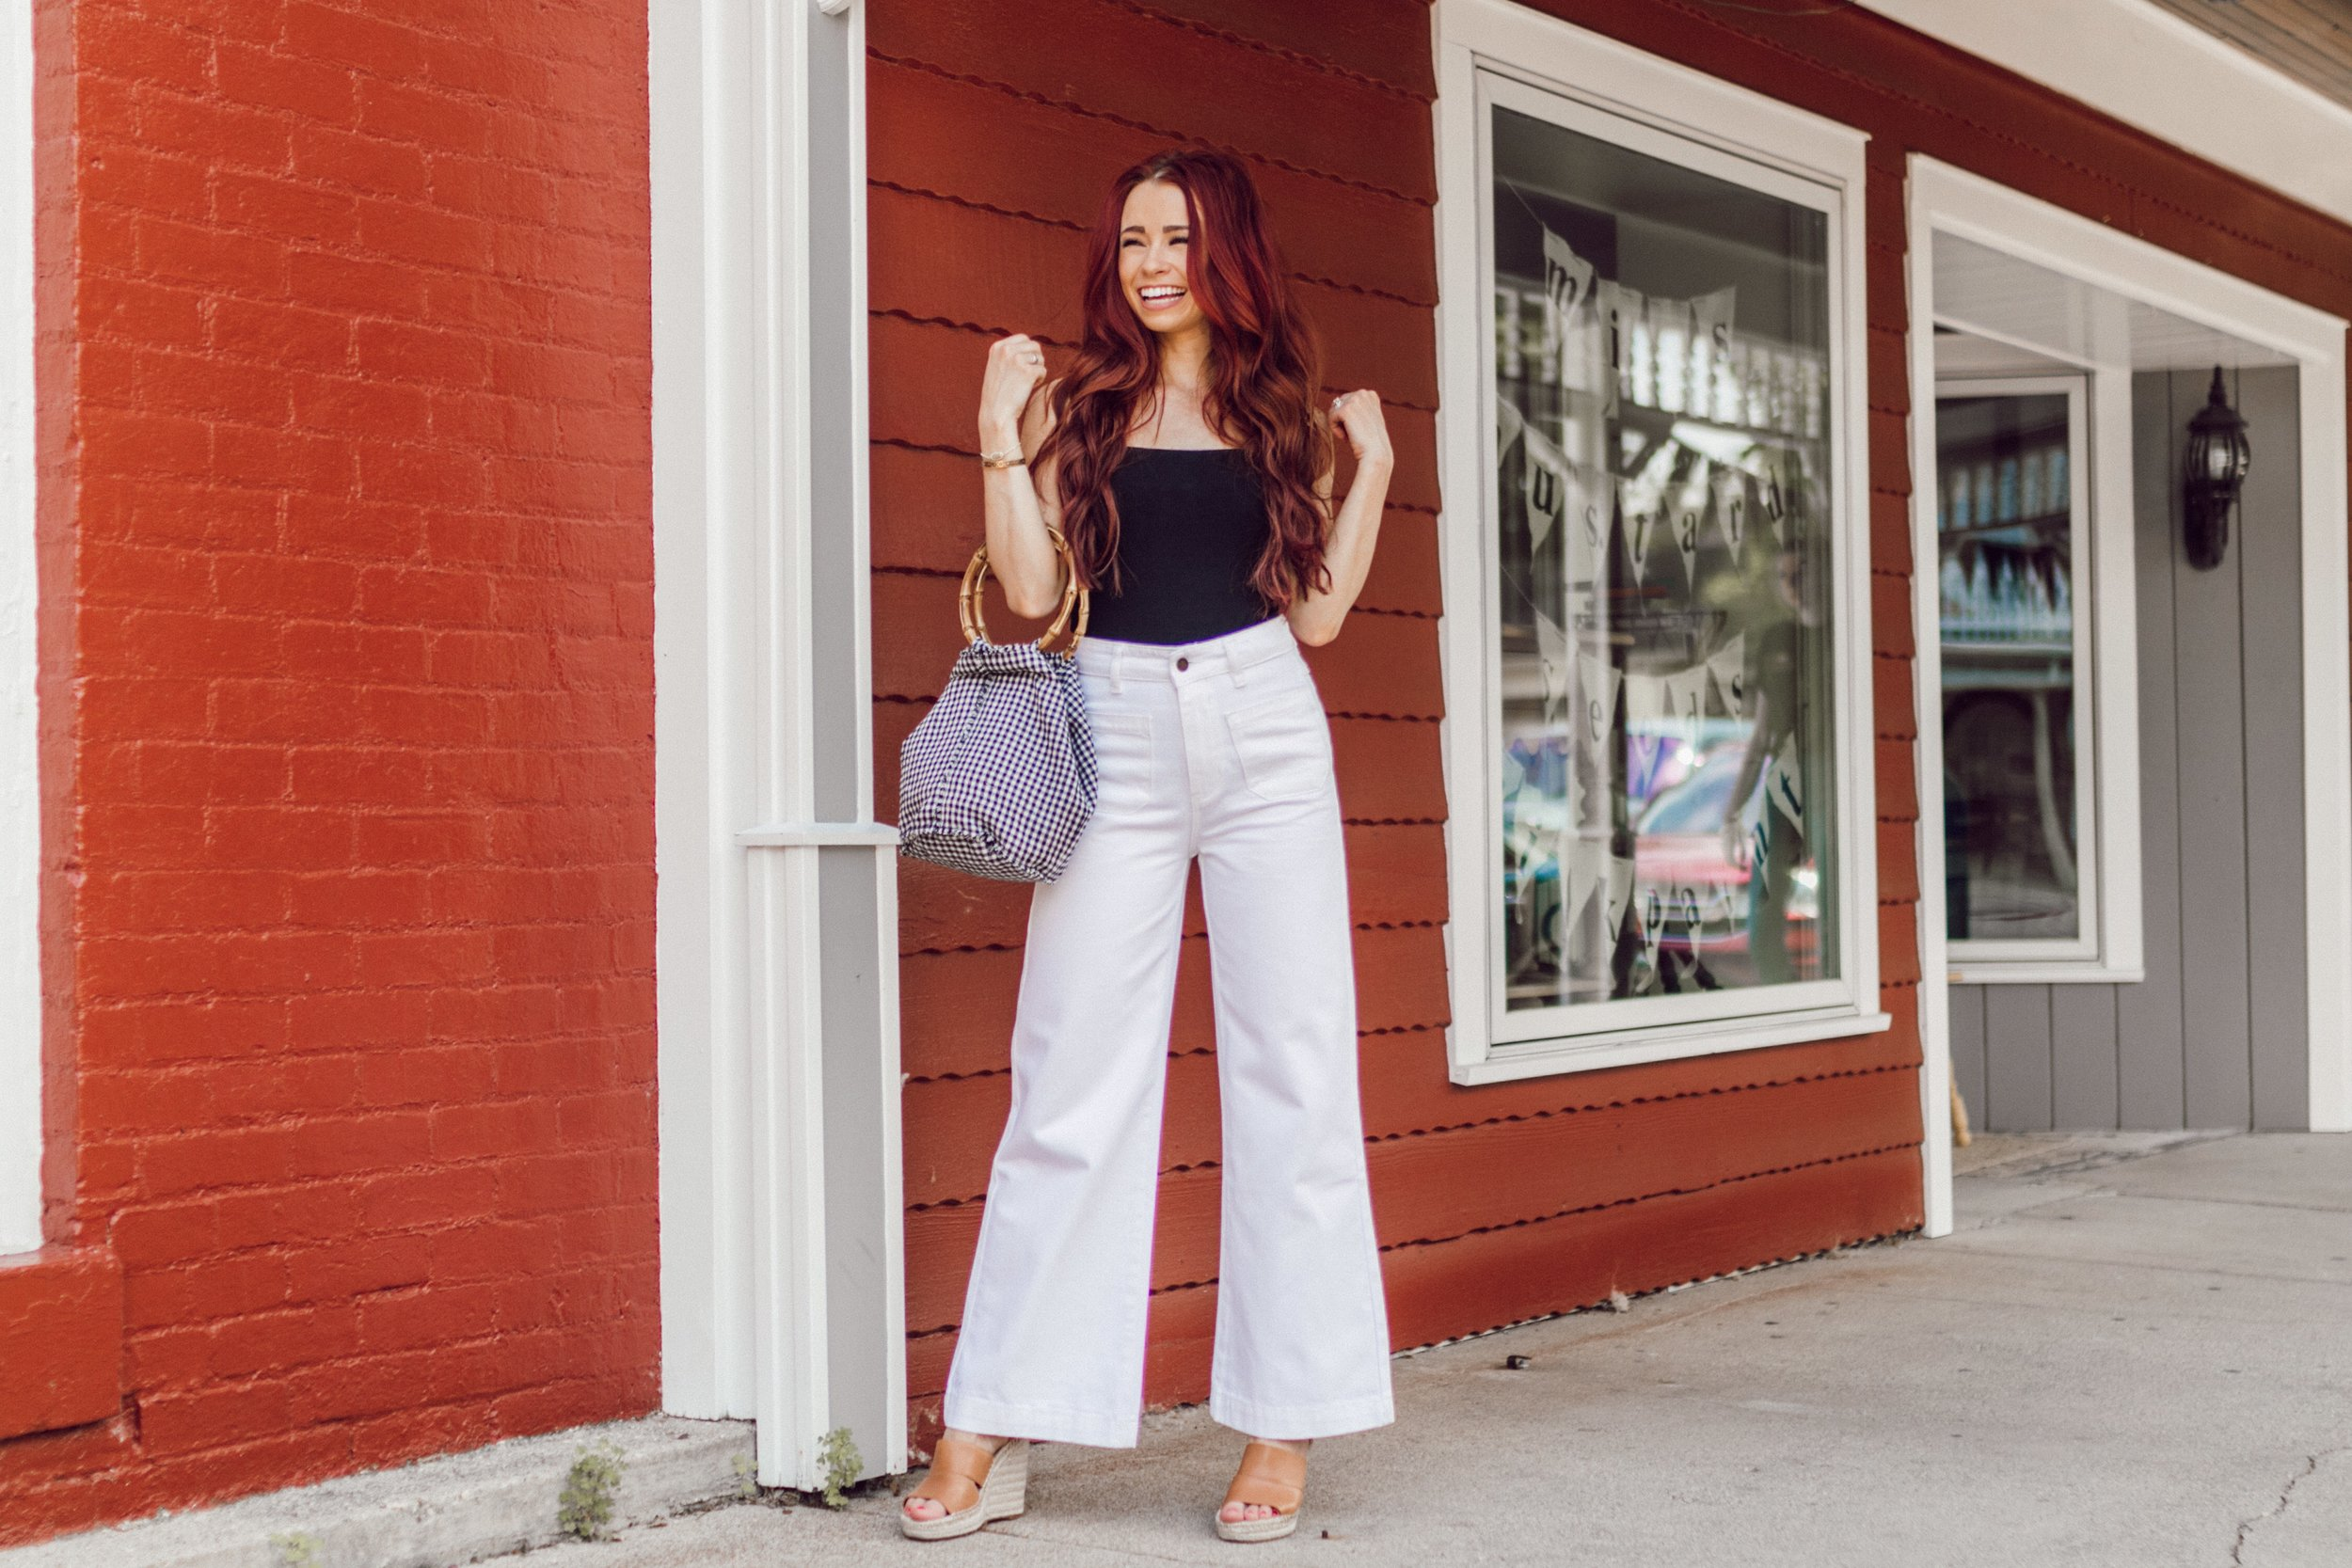 5 lies we tell ourselves as female entrepreneurs featured by popular Indianapolis style blogger, Trendy in Indy